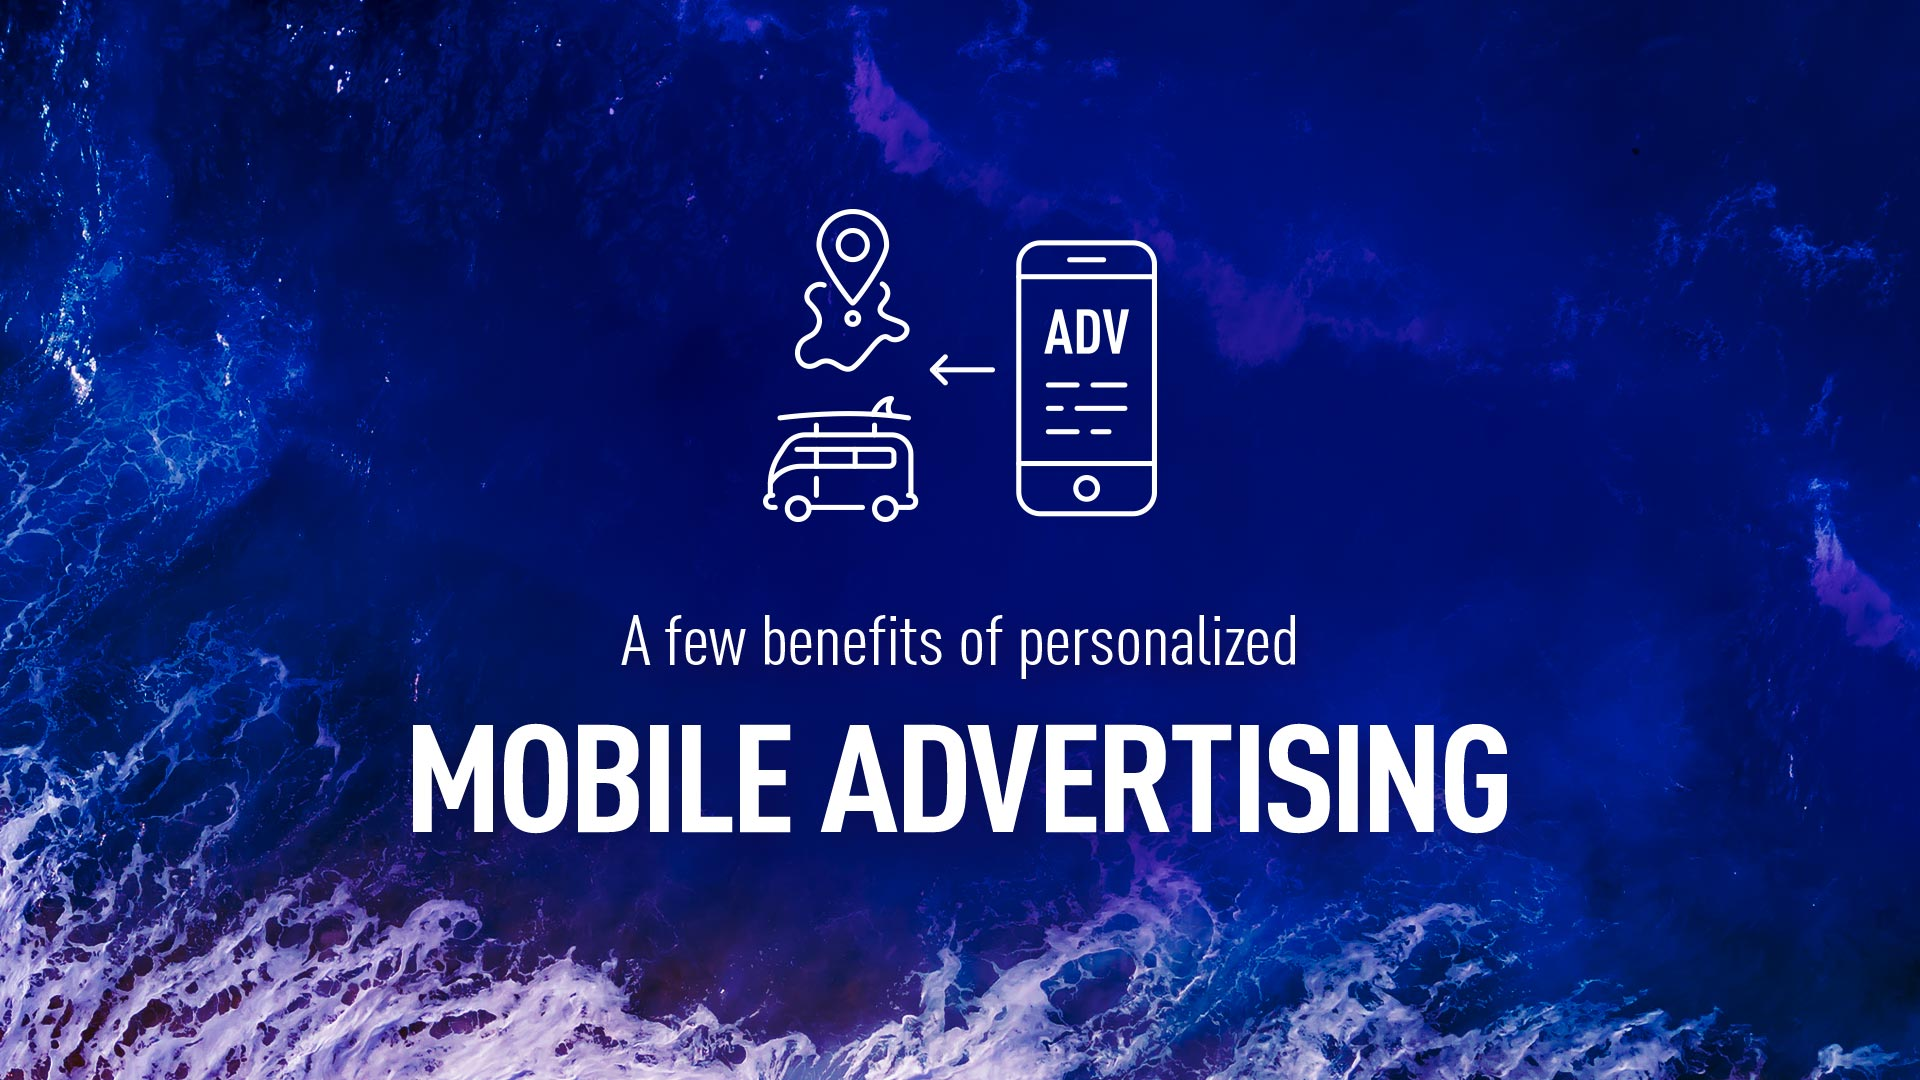 A few benefits of mobile advertising